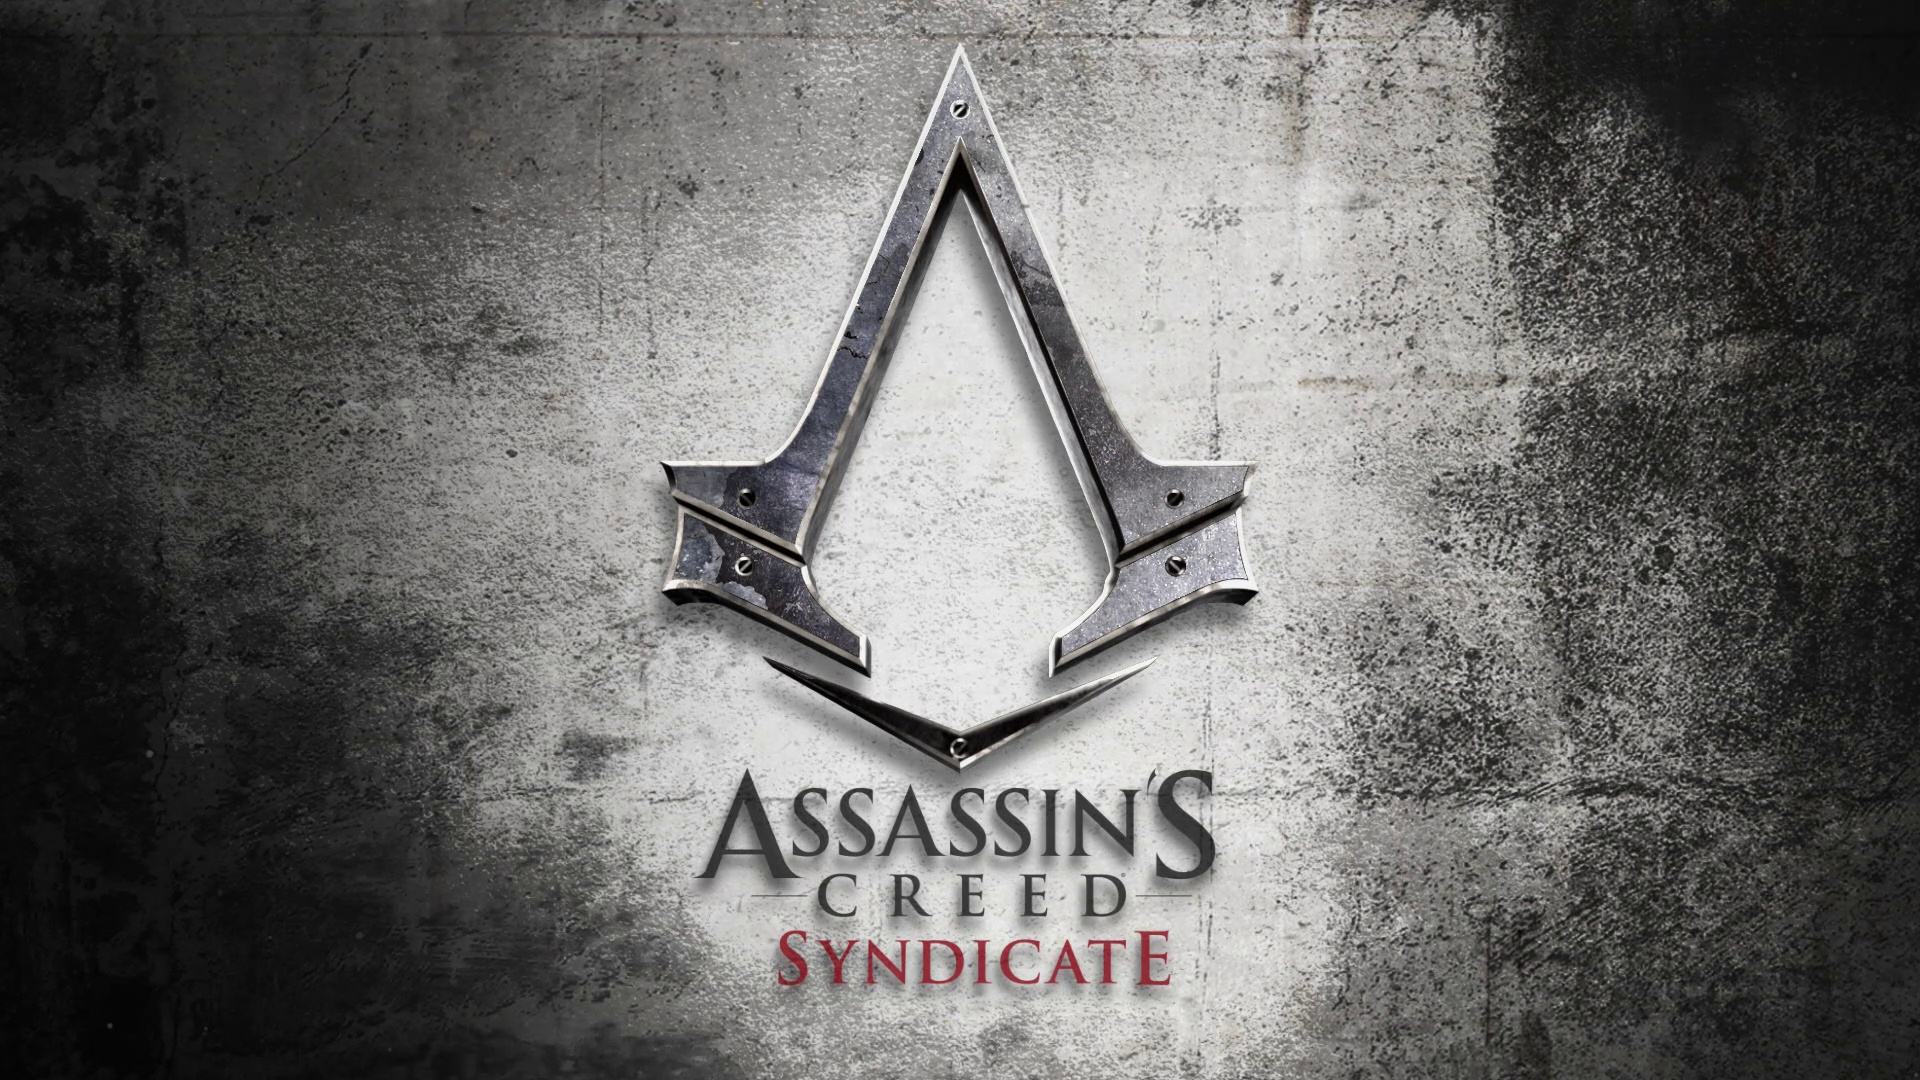 assassin's creed syndicate logo full hd wallpaper and background